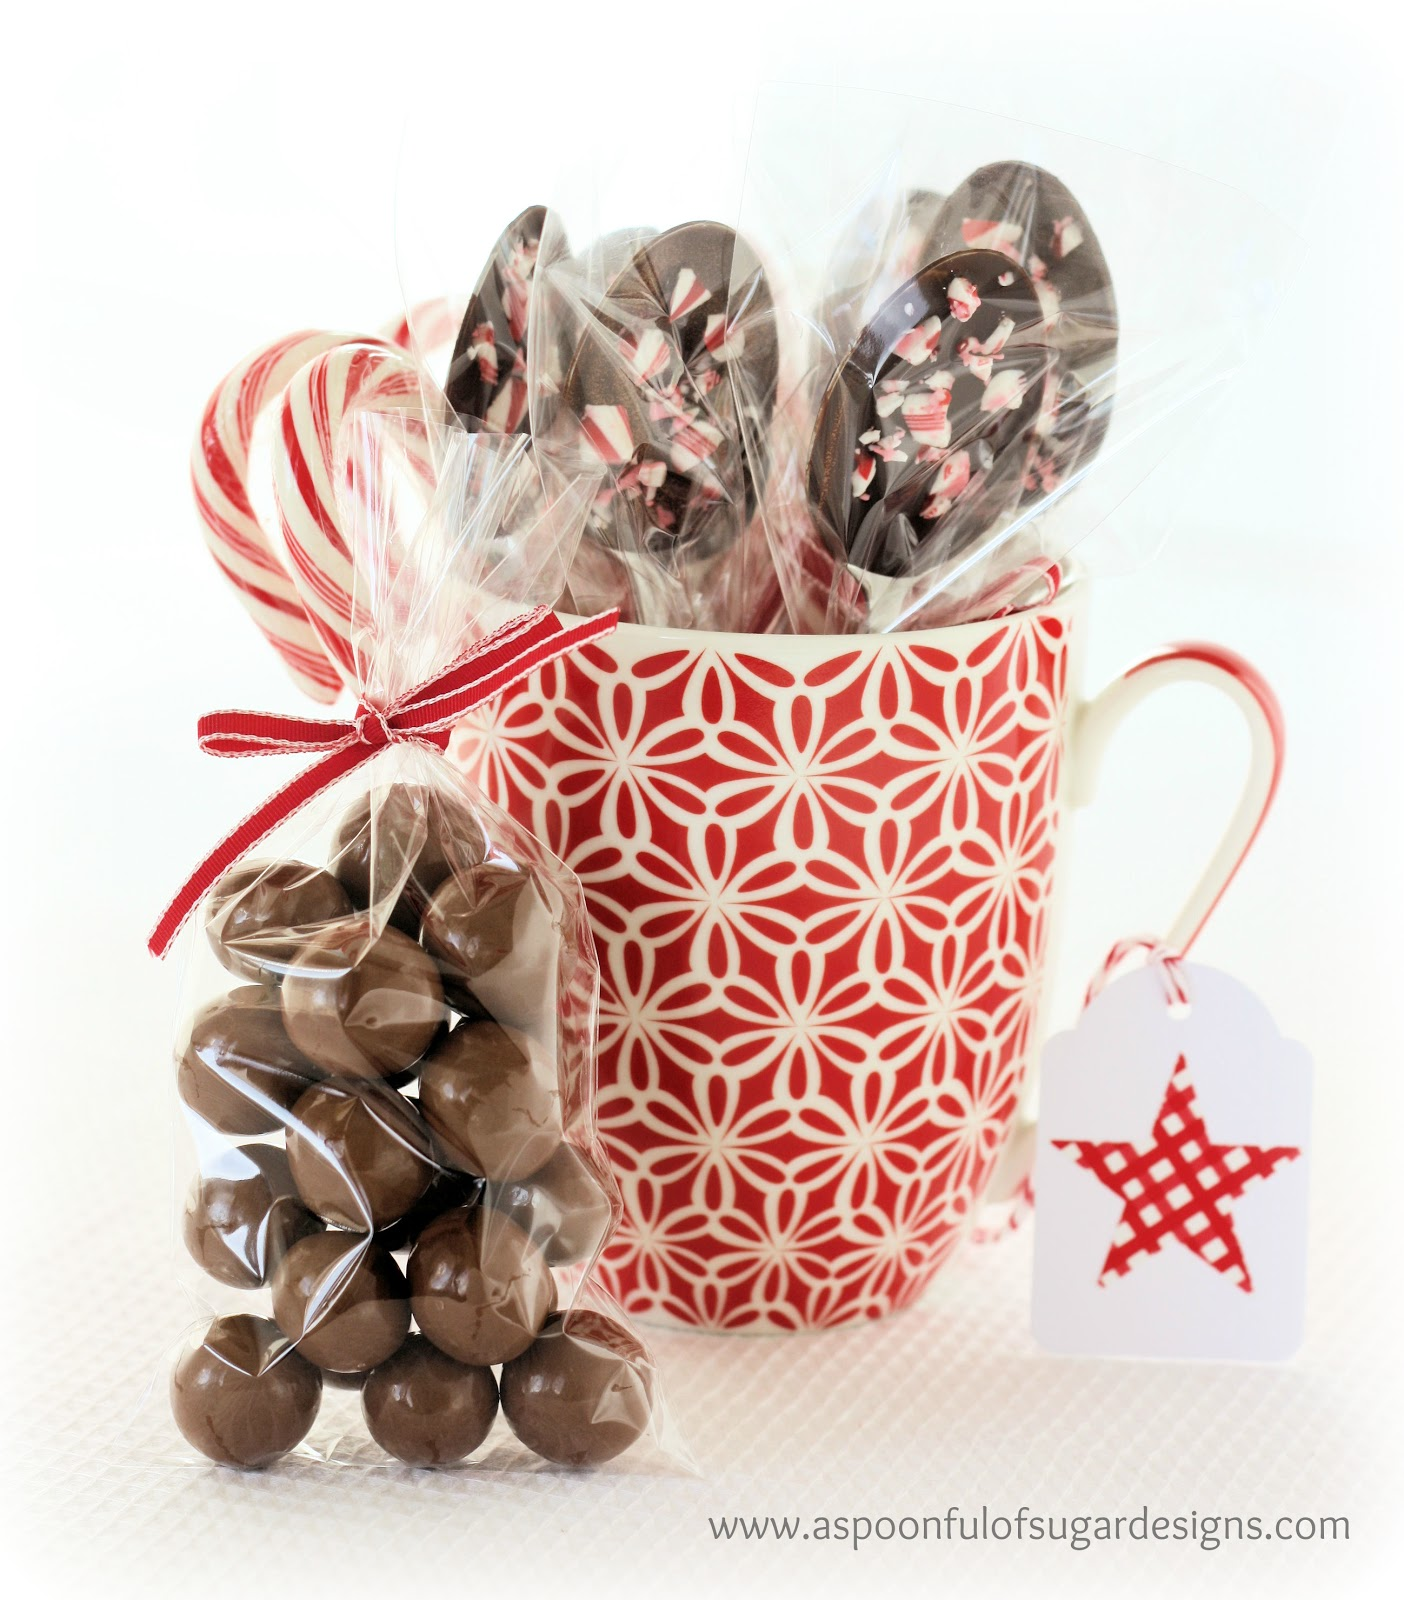 5 Hostess Gifts Ideas - A Spoonful of Sugar